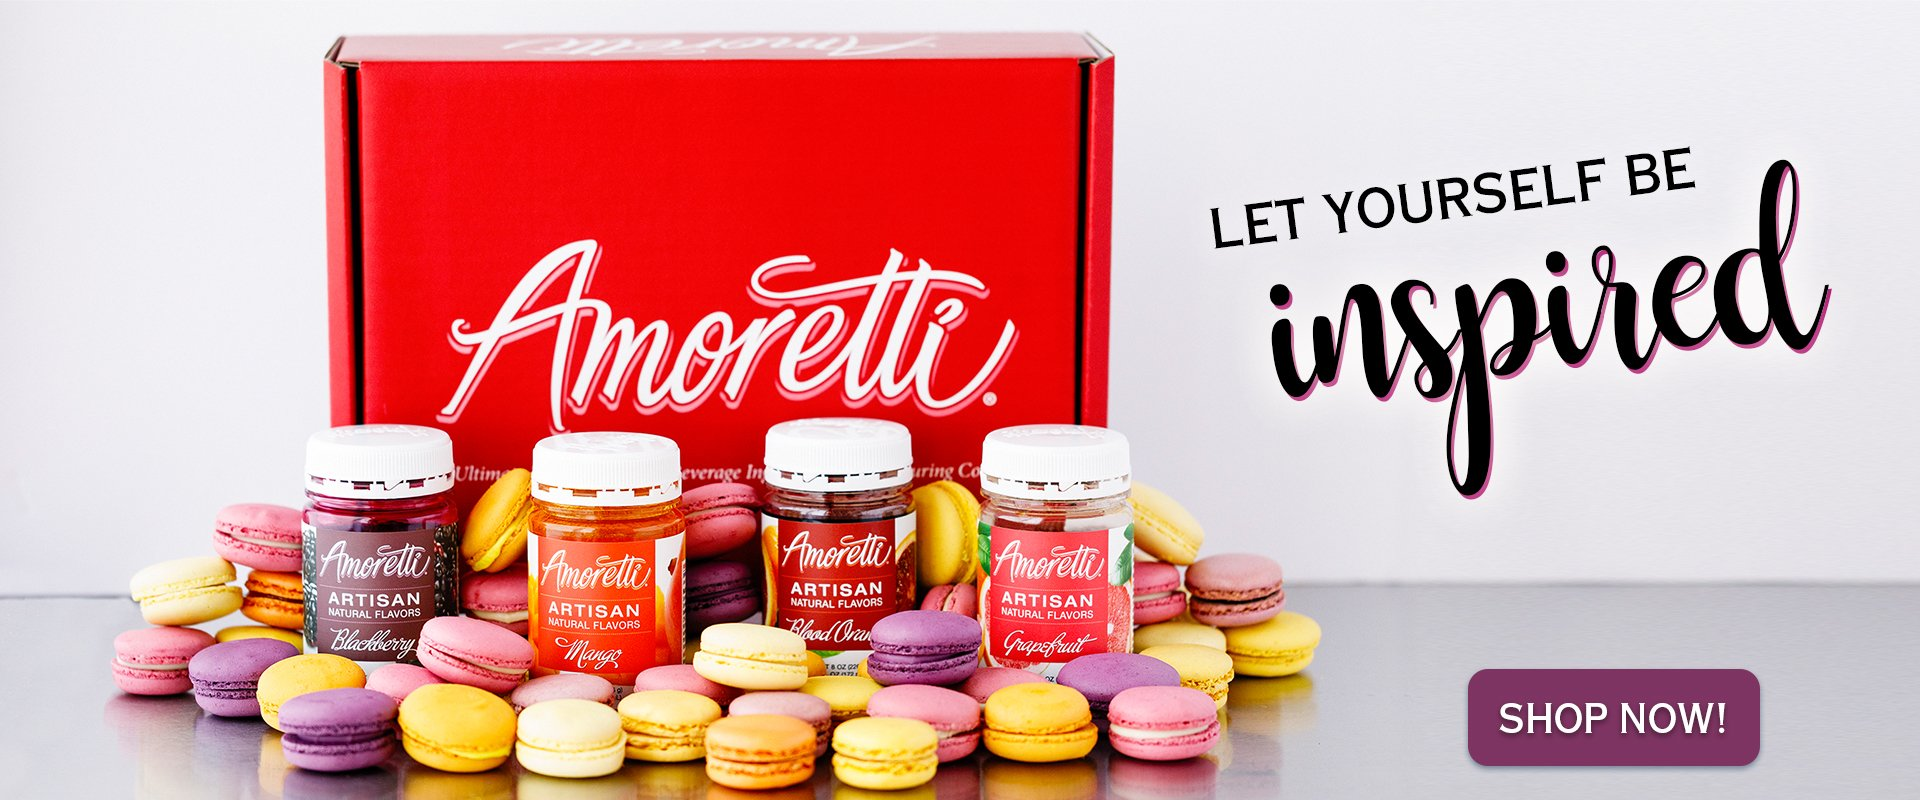 Let yourself be inspired with Amoretti Artisan Natural Flavors